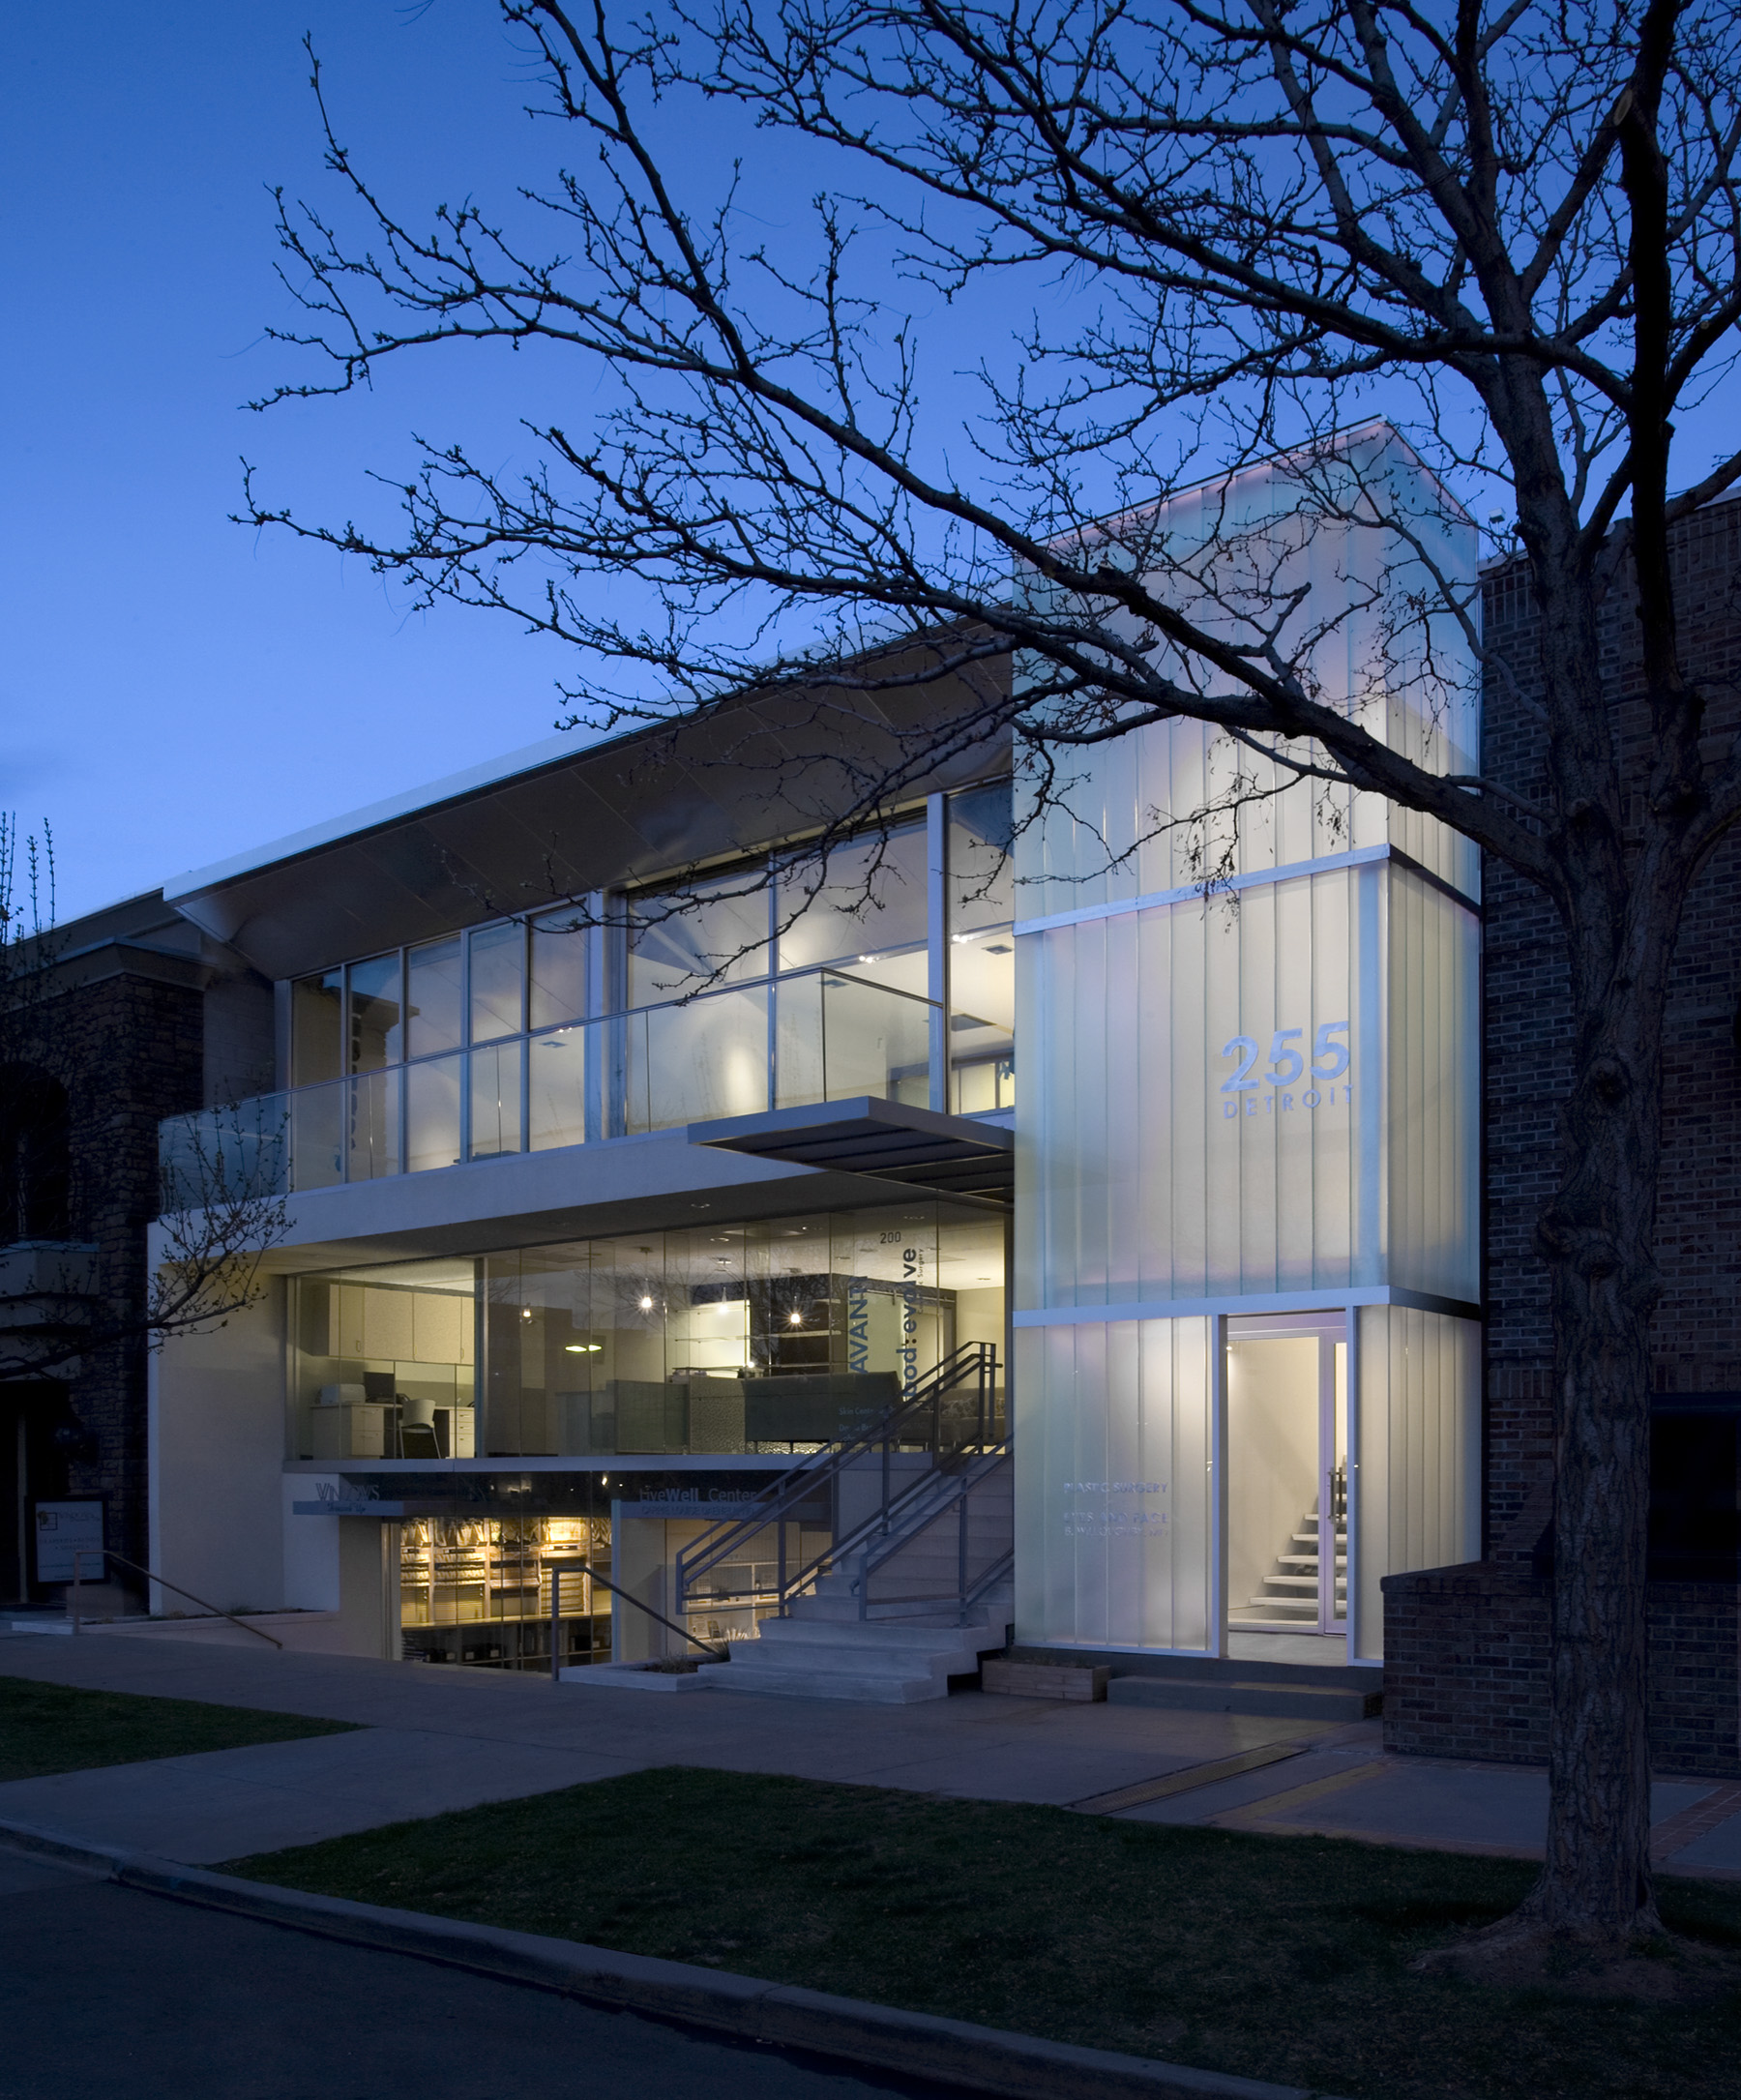 Sexton lawton architecture wins 2010 mayor s design award for Lawton architectural products